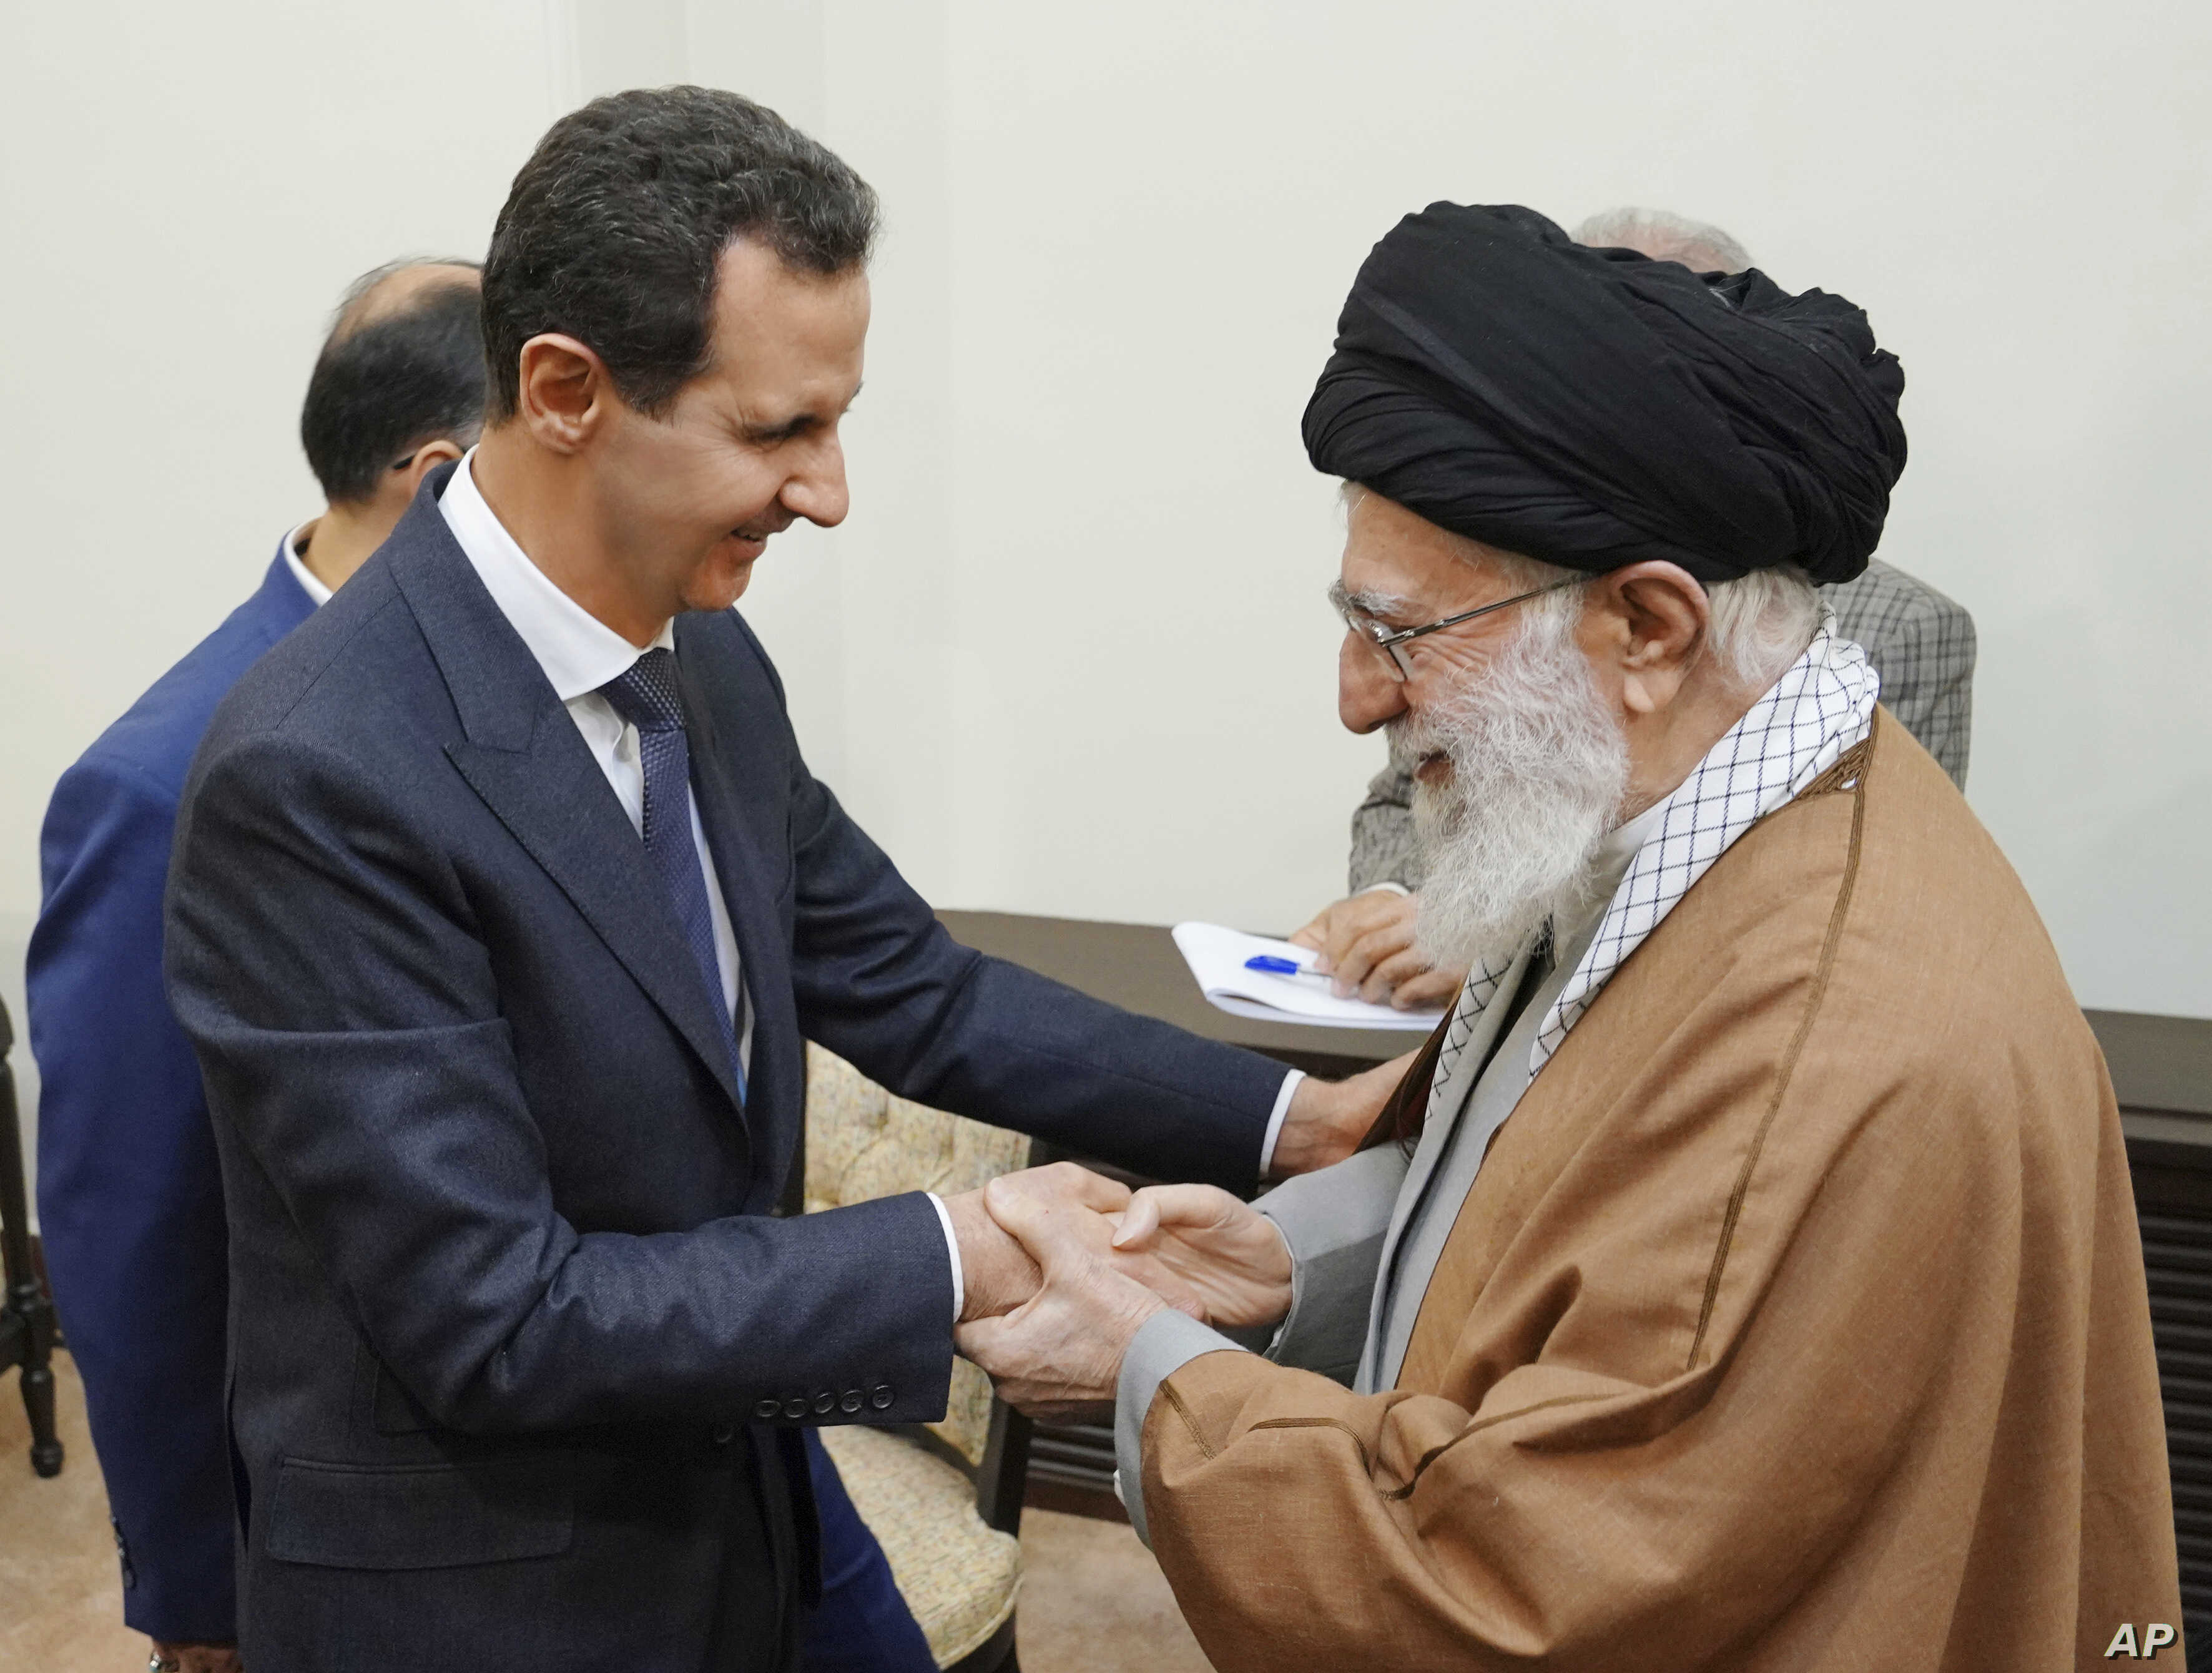 In this photo released by the Syrian official news agency SANA, Syrian President Bashar al-Assad, left, shakes hands with Iranian Supreme Leader Ayatollah Ali Khamenei, before their meeting in Tehran, Syria, Feb. 25, 2019.